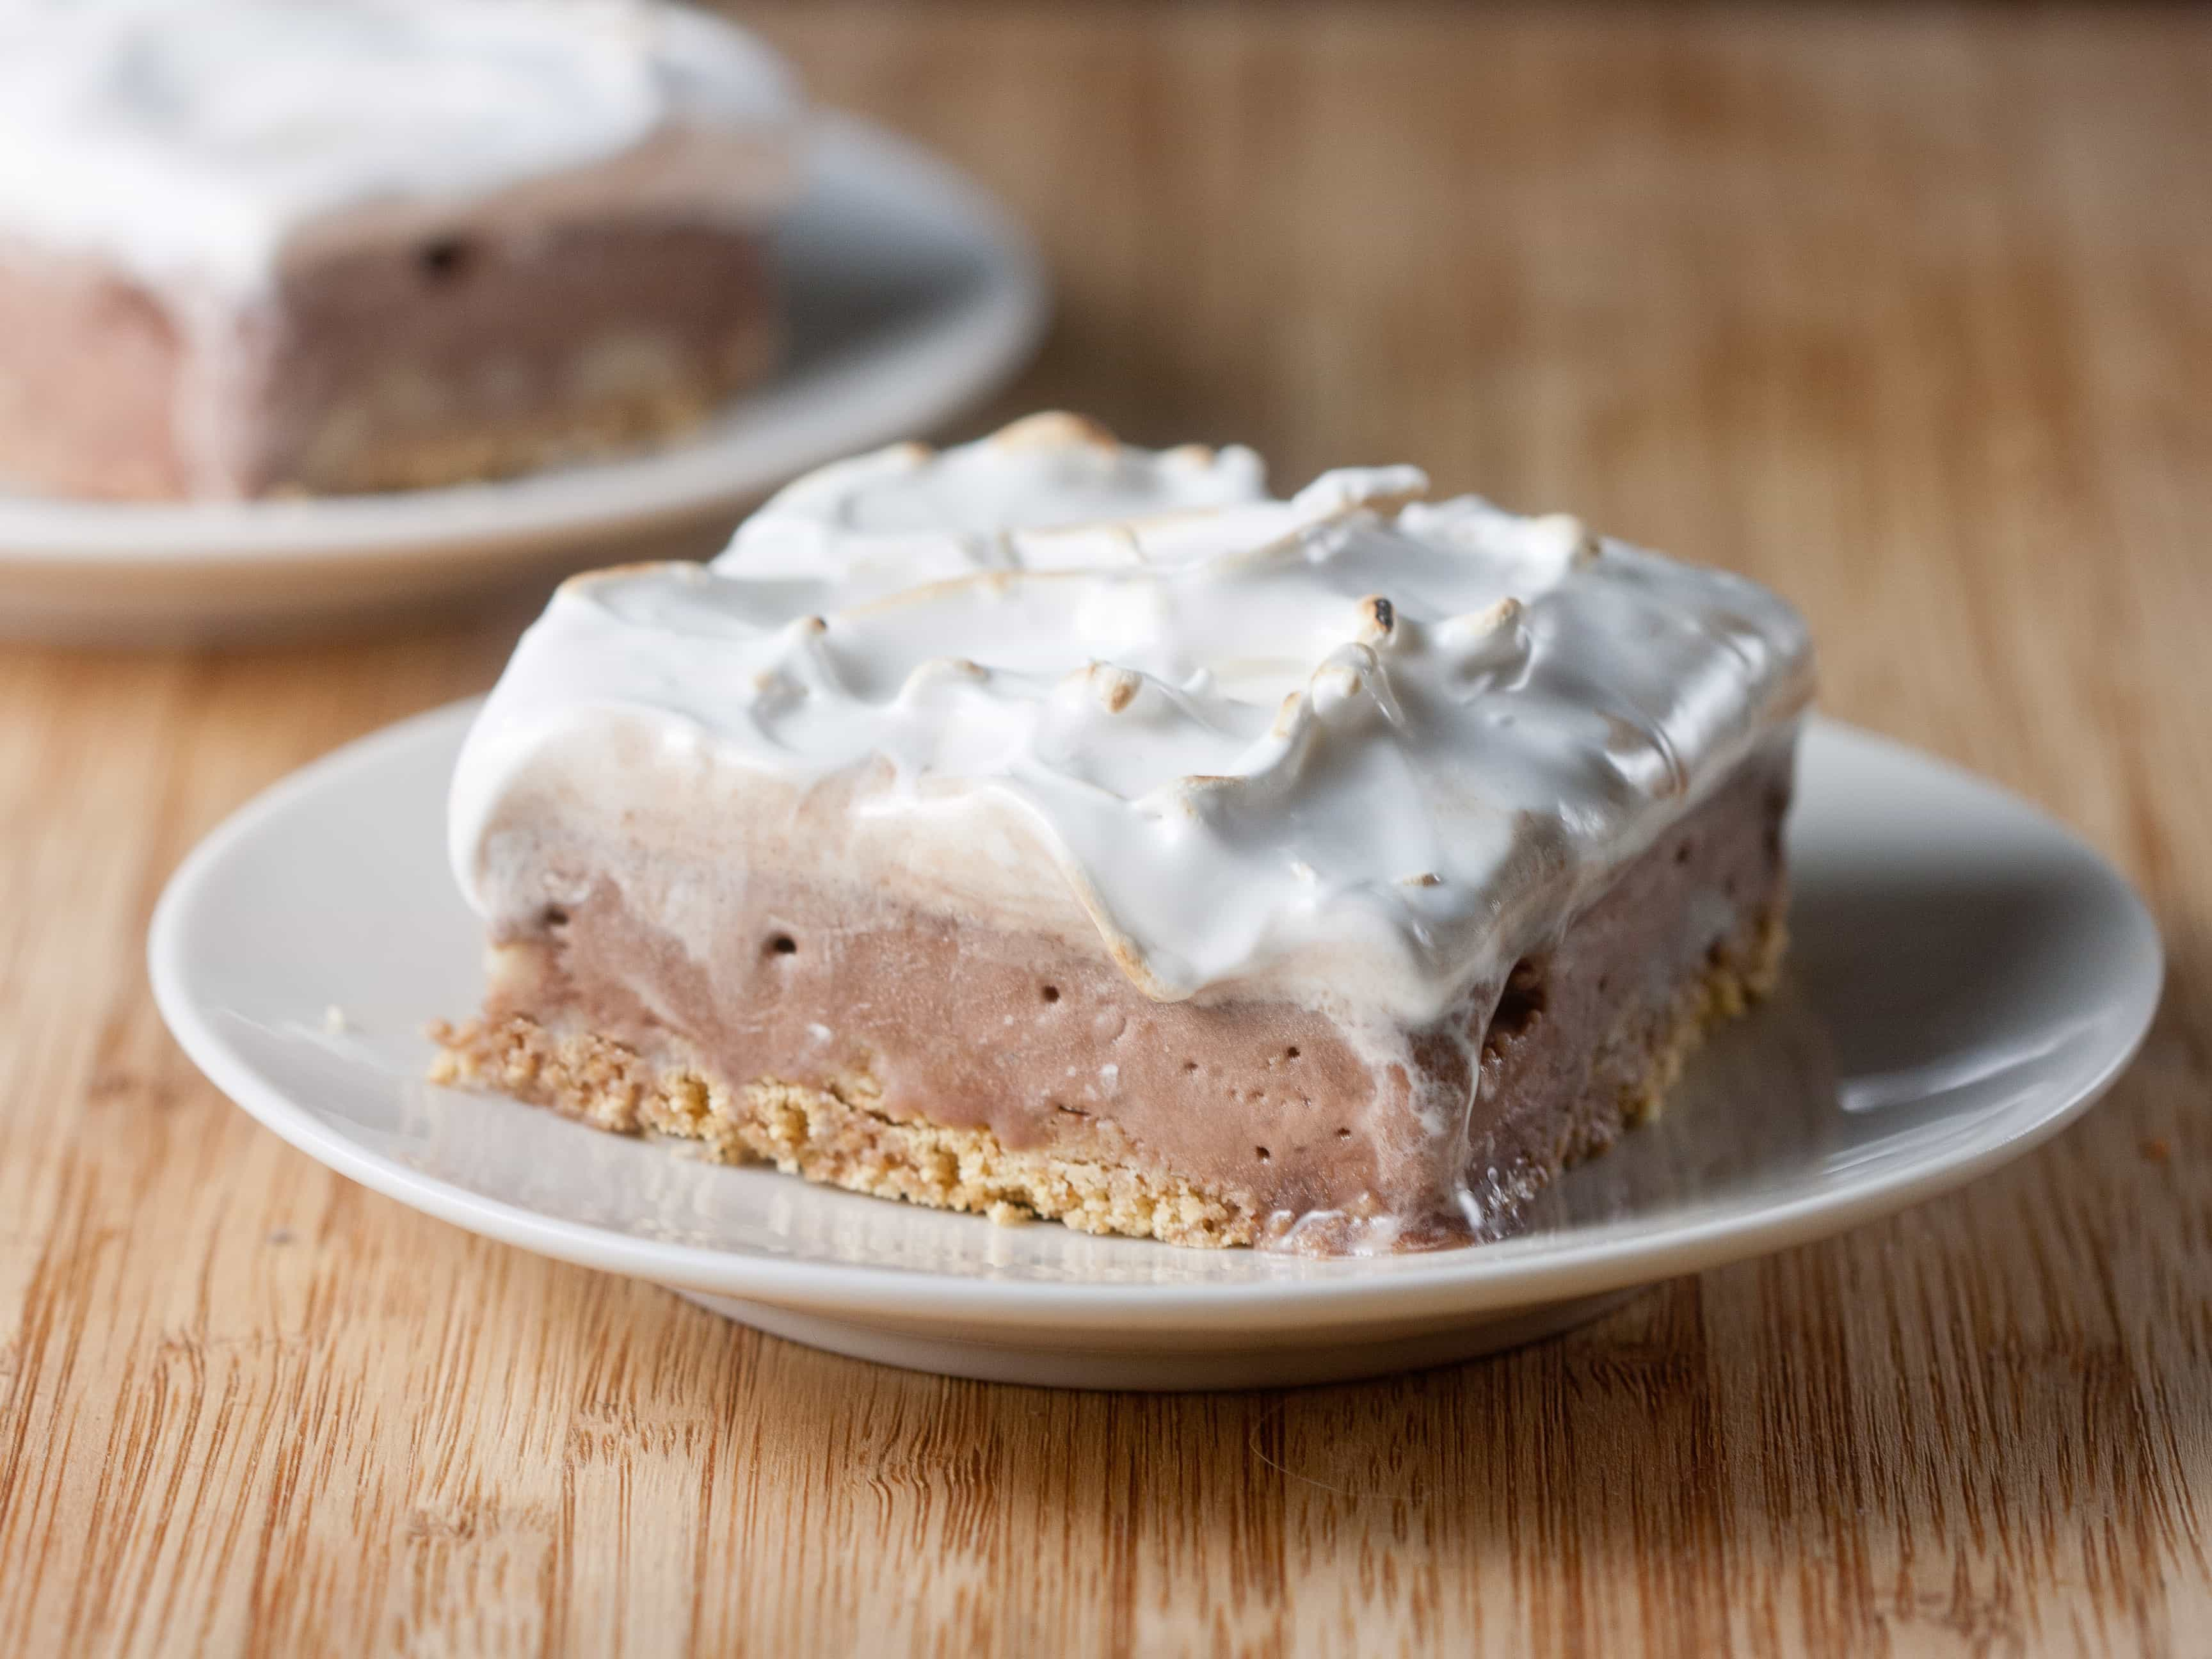 Triple Onion Dip & S'mores Ice Cream Pie - Healthy. Delicious.